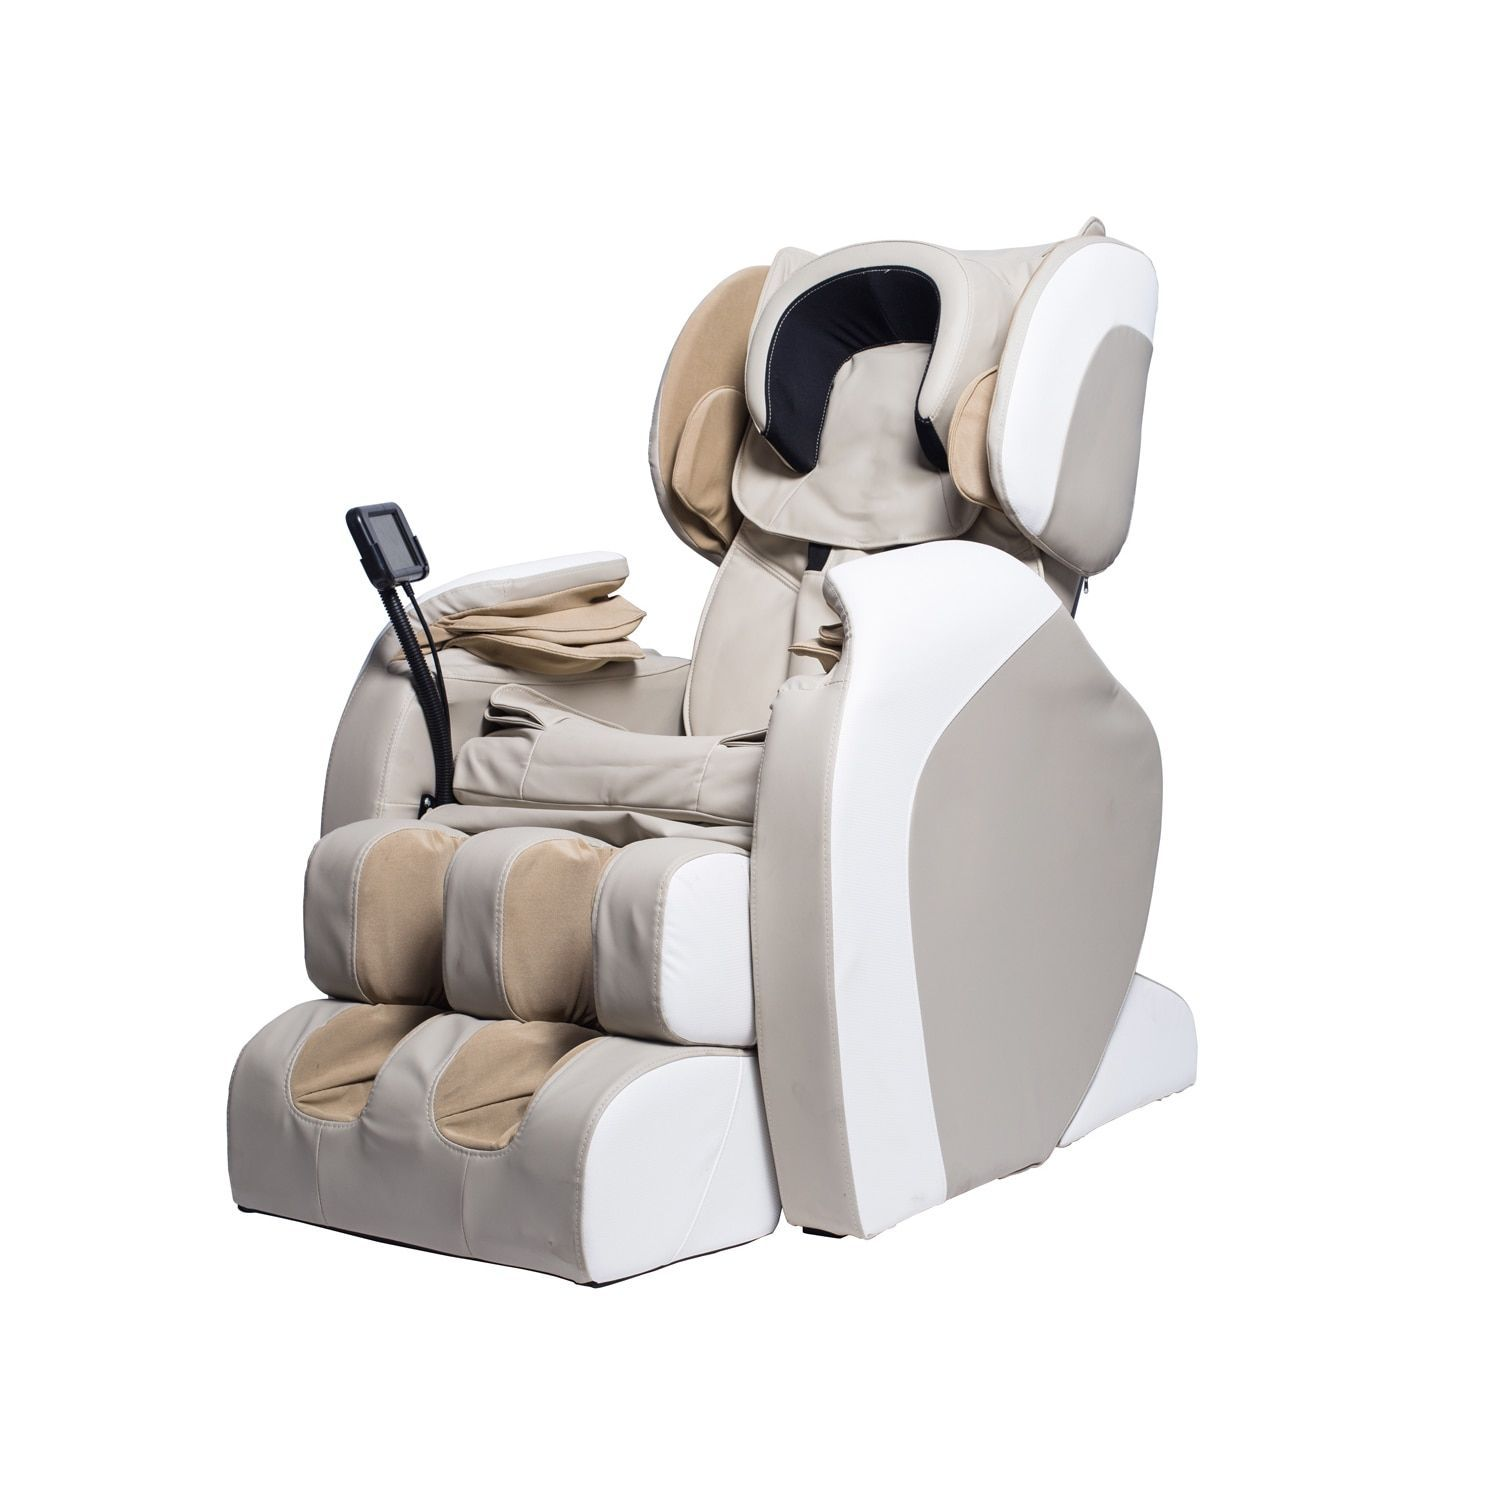 Shiatsu Massage Chair Recliner W Heat Stretched Foot Rest 06c Beach House Dining Chairs Electric Heated Products